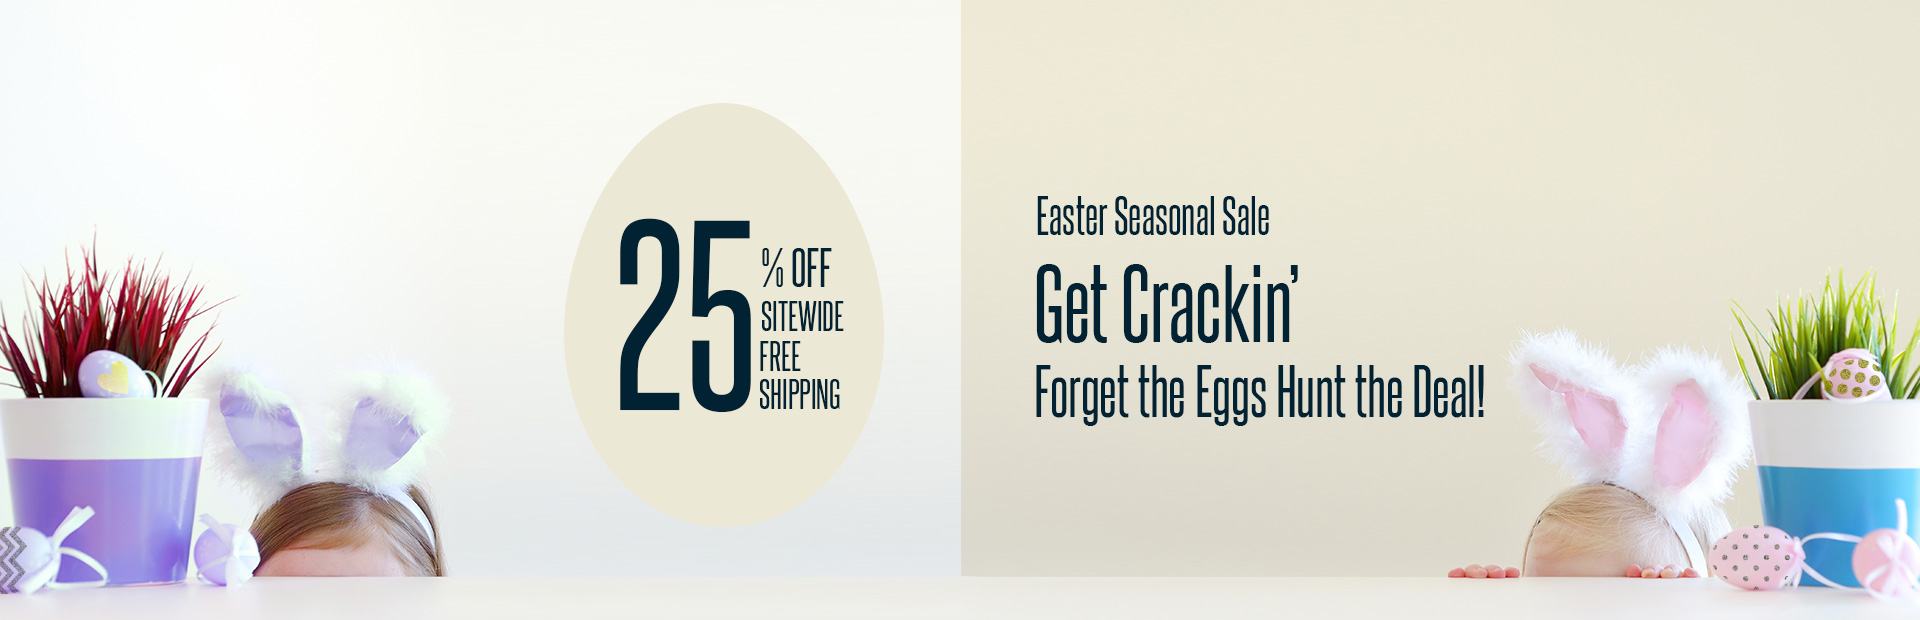 Get Crackin' Forget the Eggs Hunt the Deal!